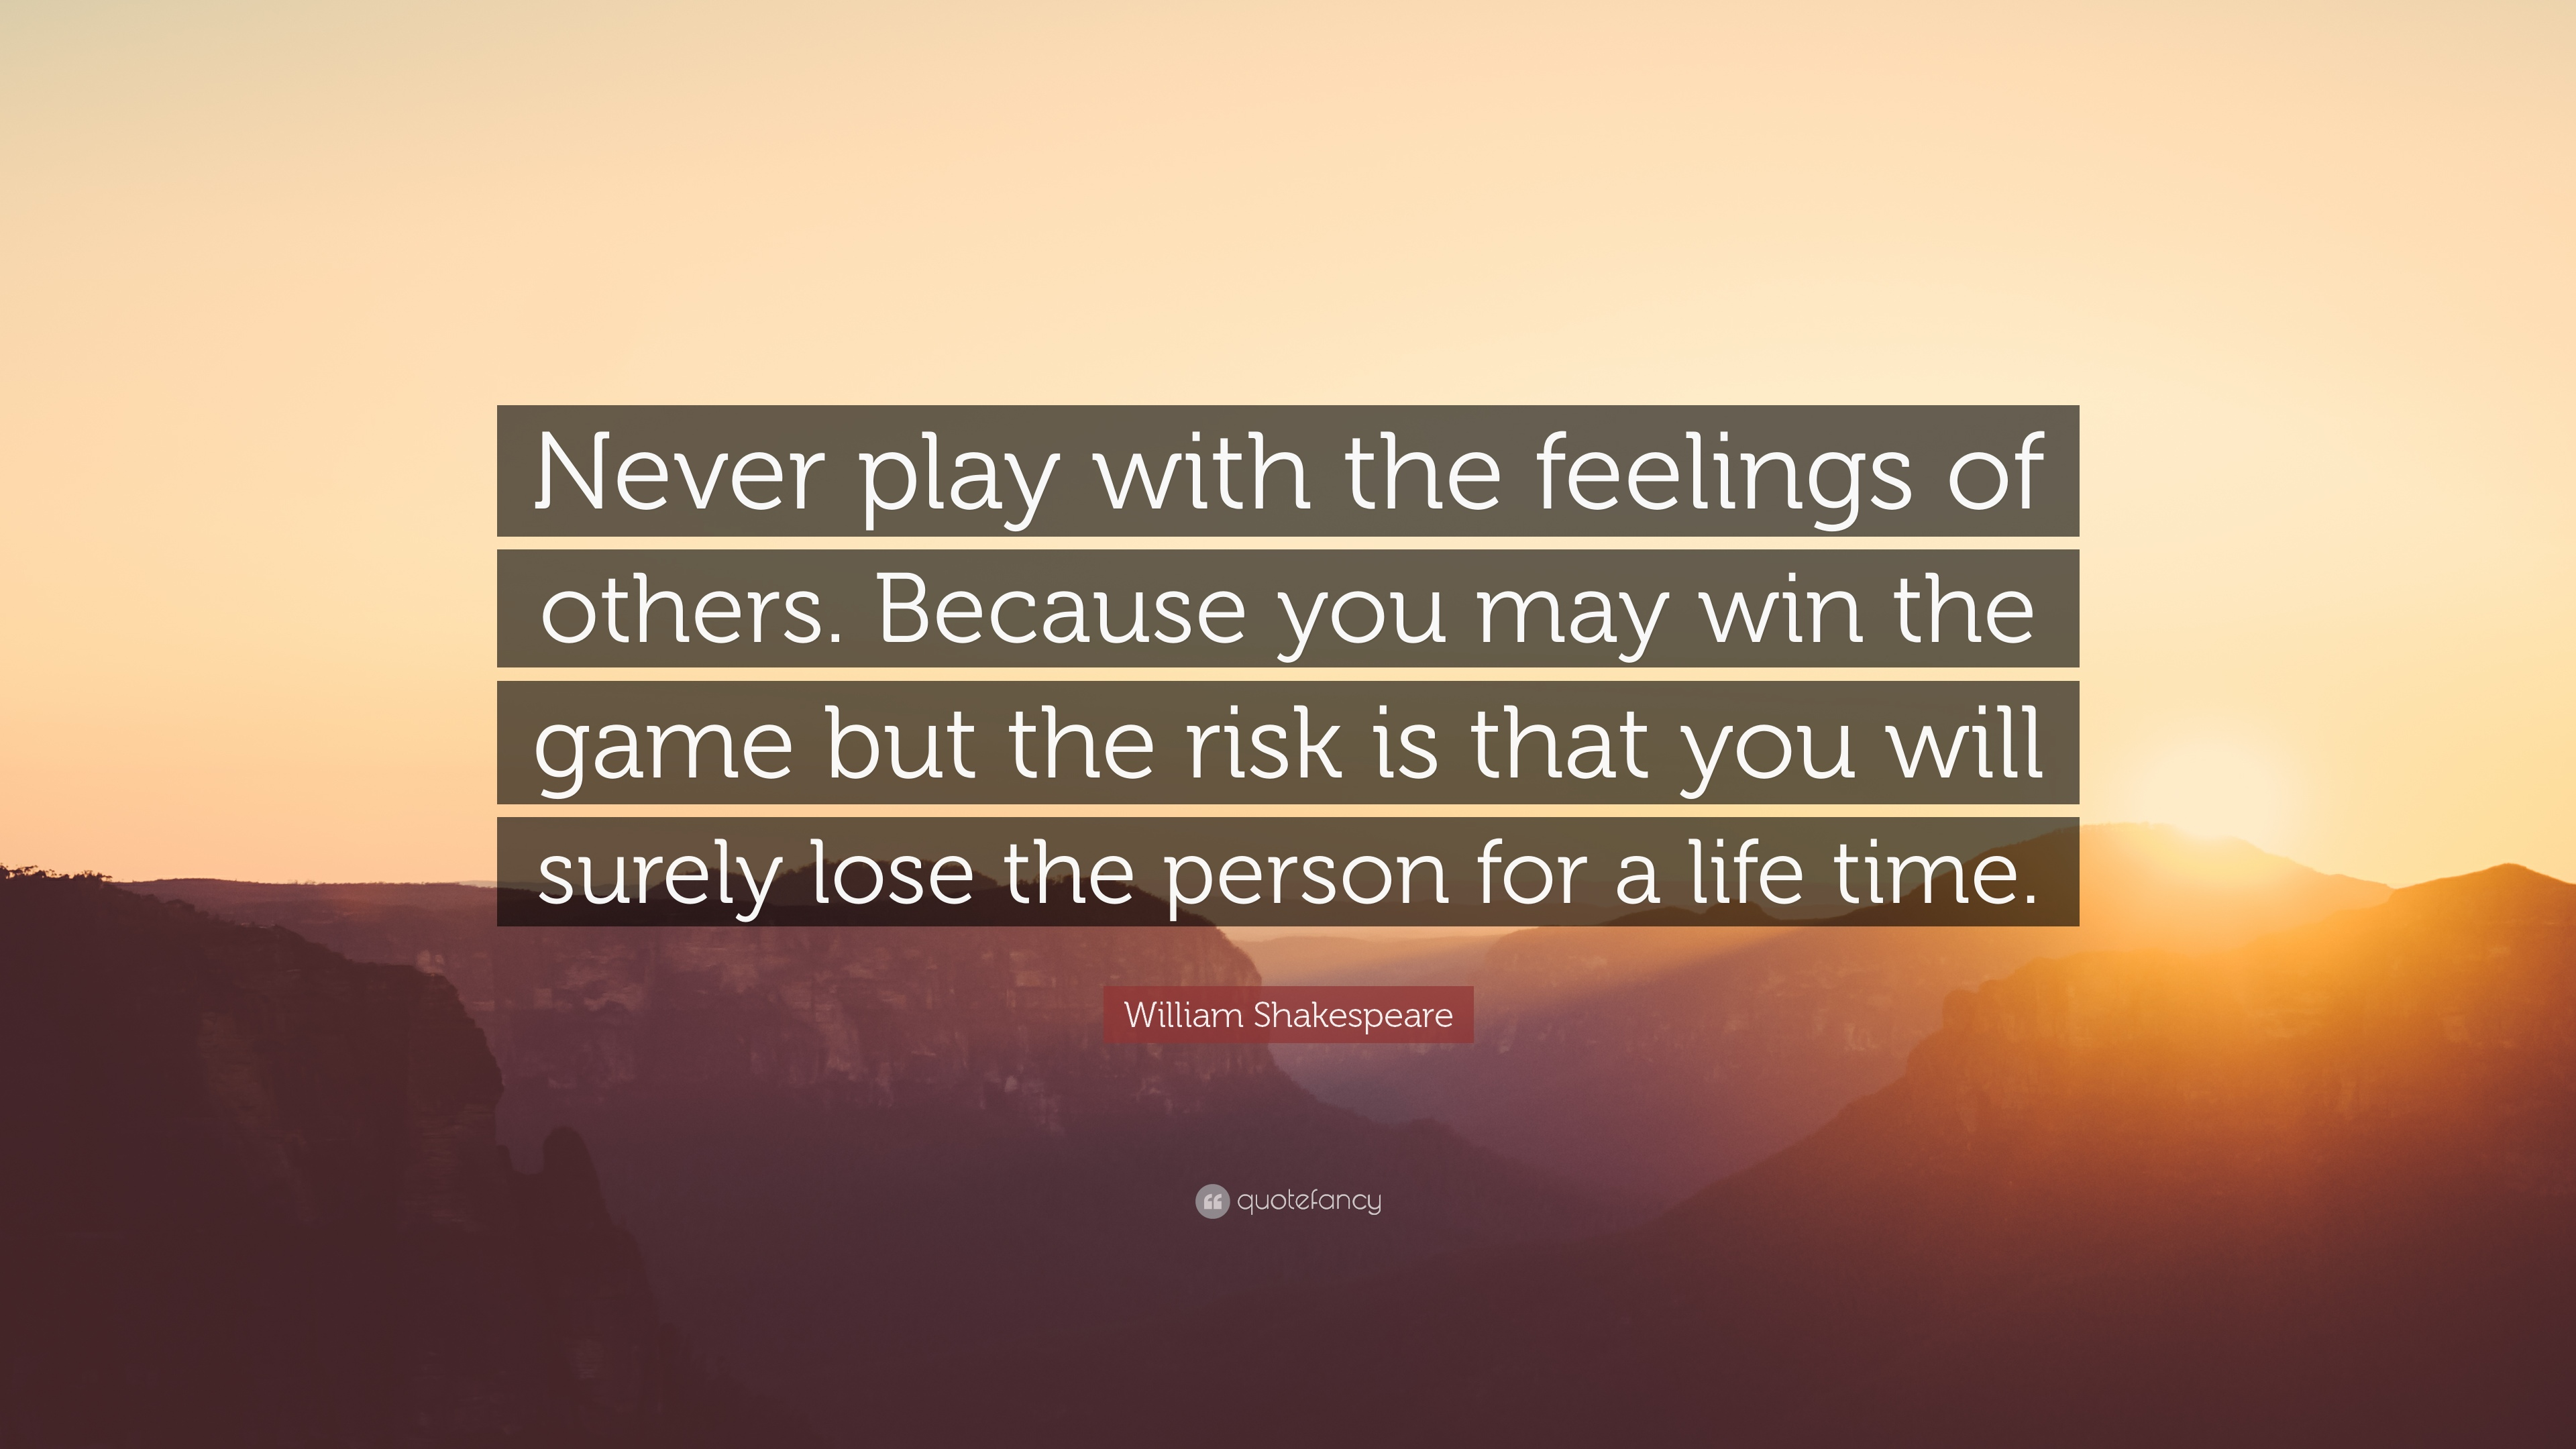 william shakespeare quote never play with the feelings